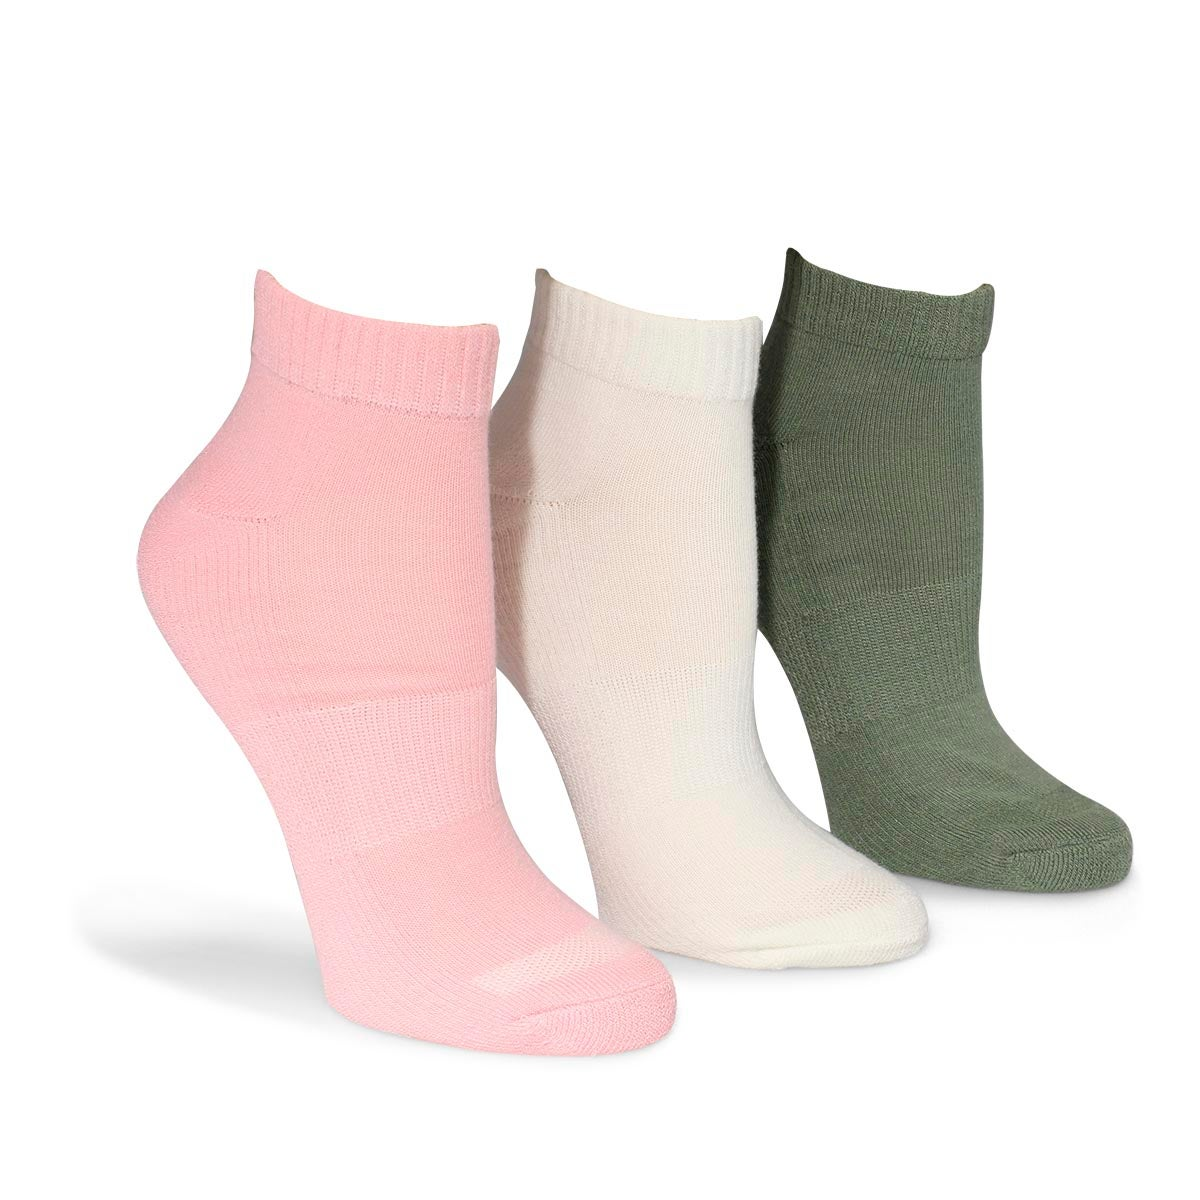 Lds Classic Foundational multi sock 3 pk